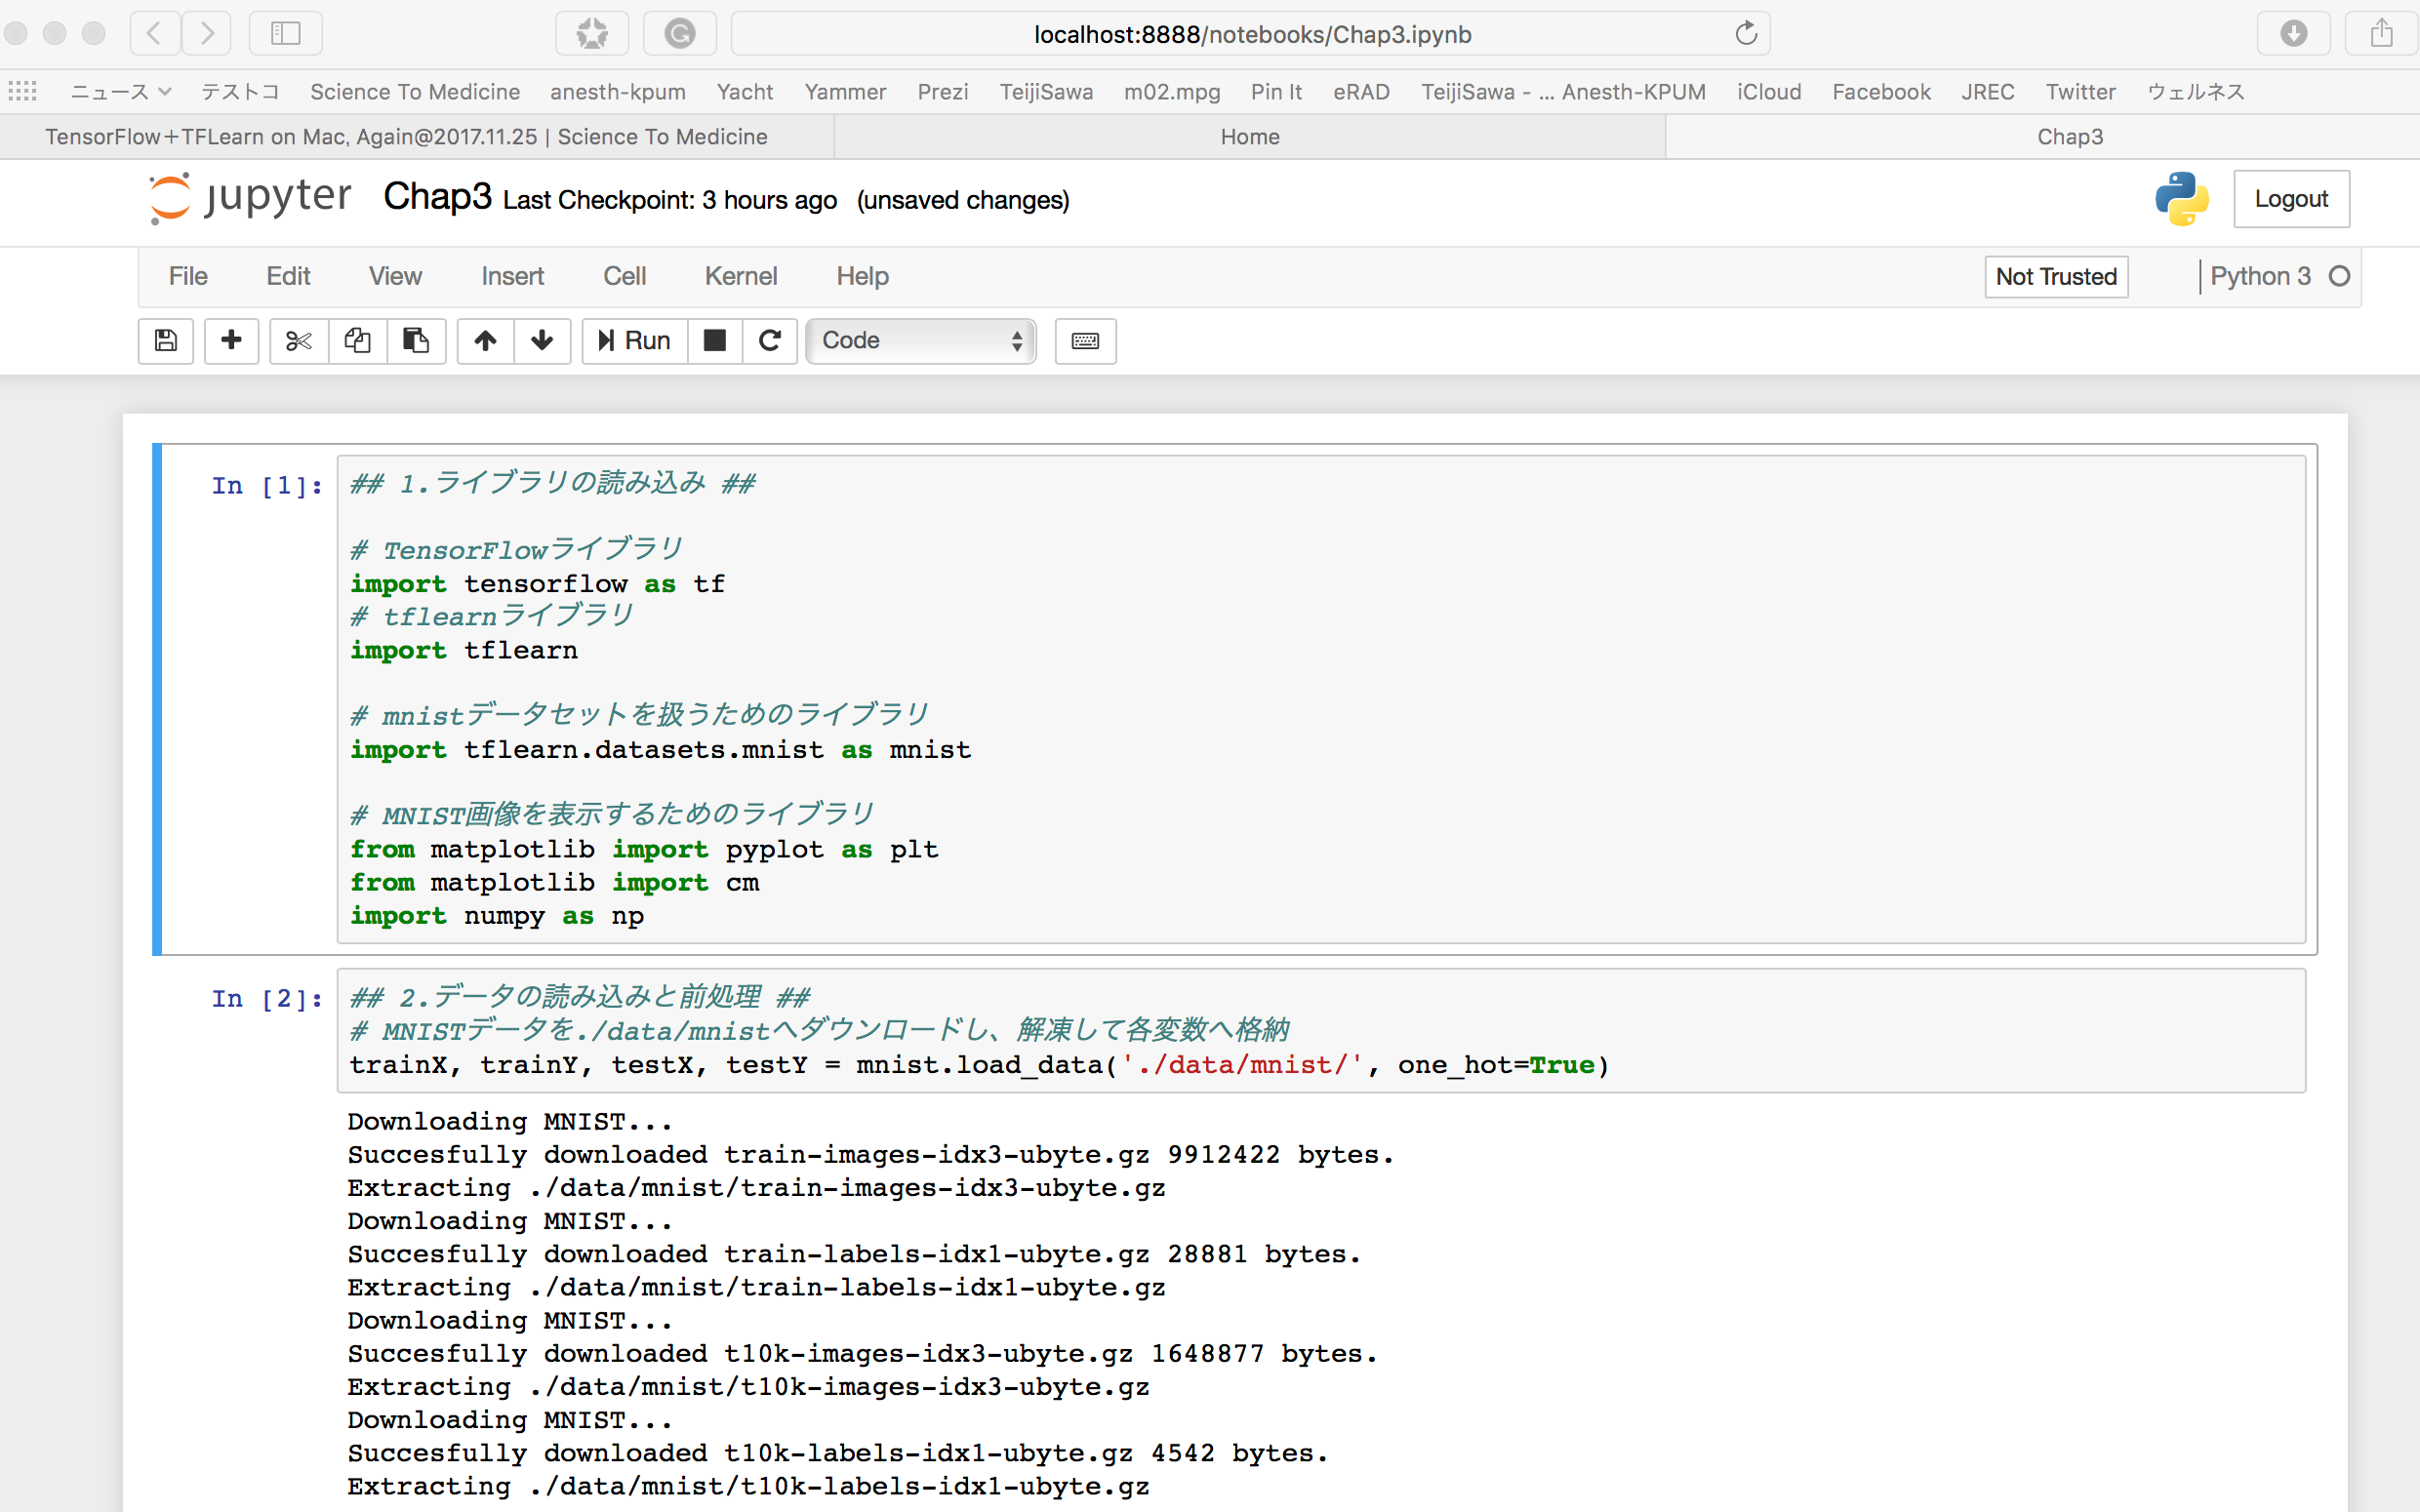 TensorFlow+TFLearn > Jupyter Notebook on Mac OS X with Python 3 6